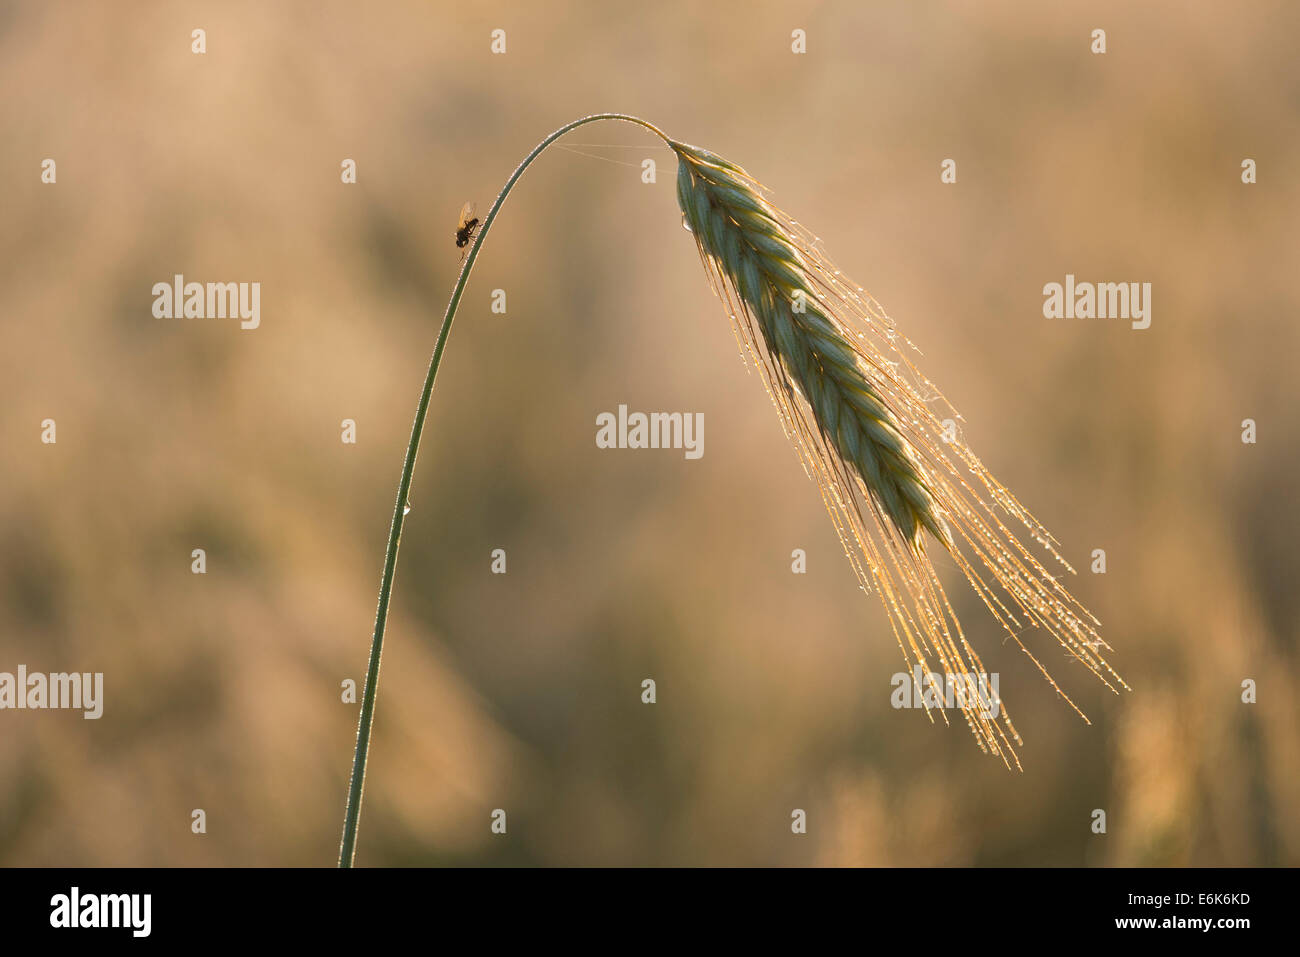 Barley (Hordeum vulgare), ear with morning dew, Thuringia, Germany - Stock Image